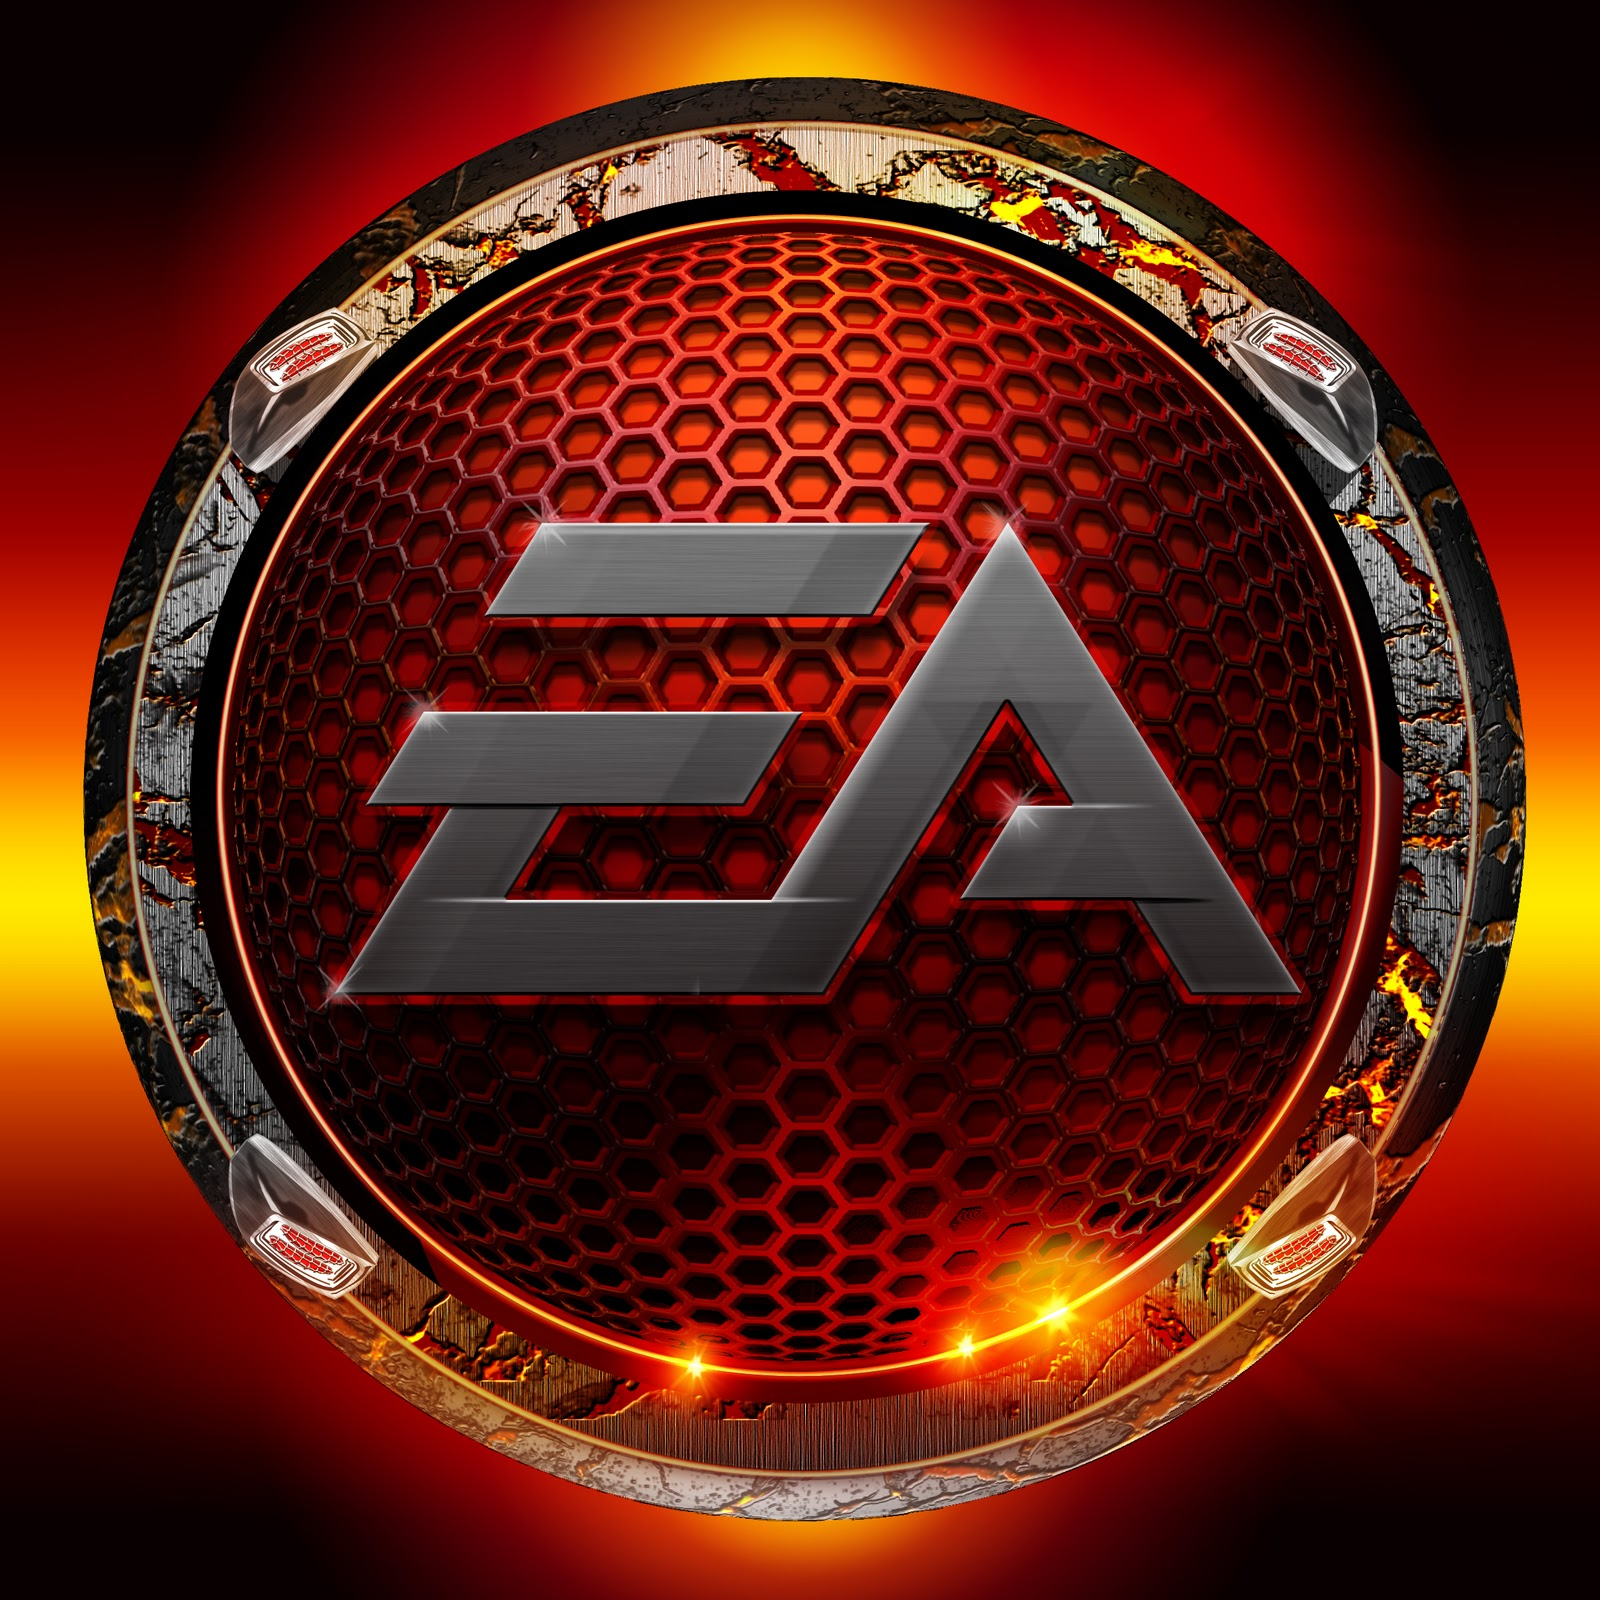 electronic arts Updated news for electronic arts inc - including ea company news, press releases and other industry & stock market news.